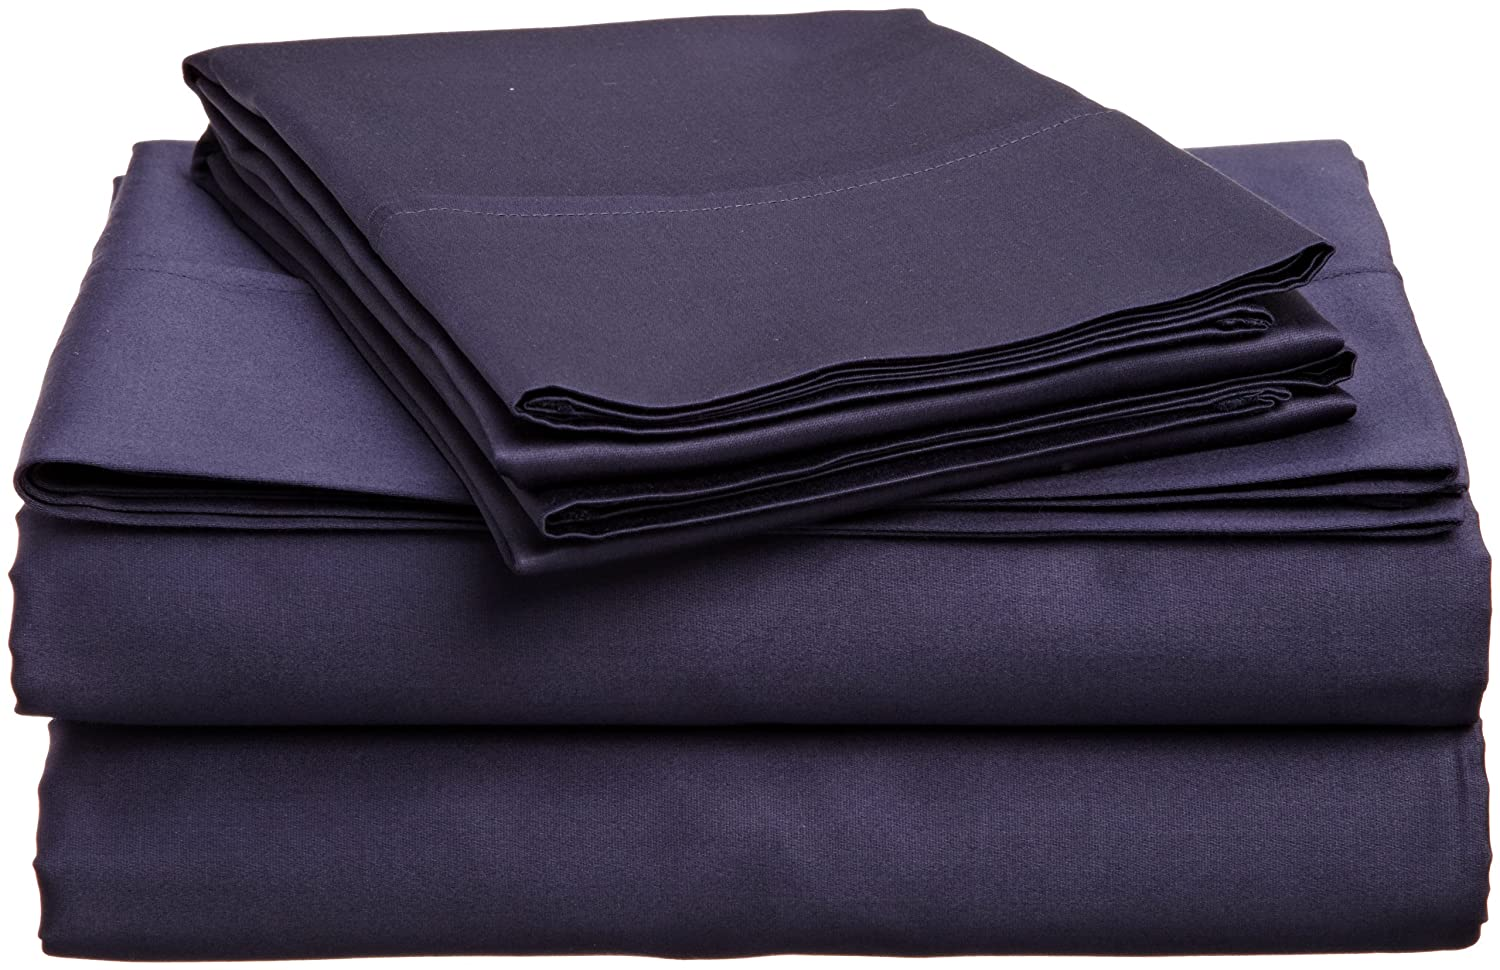 Be the first to review percale t 180 classic queen size flat sheets - Amazon Com 100 Premium Combed Cotton 400 Thread Count Twin Xl 3 Piece Sheet Set Solid Navy Blue Home Kitchen